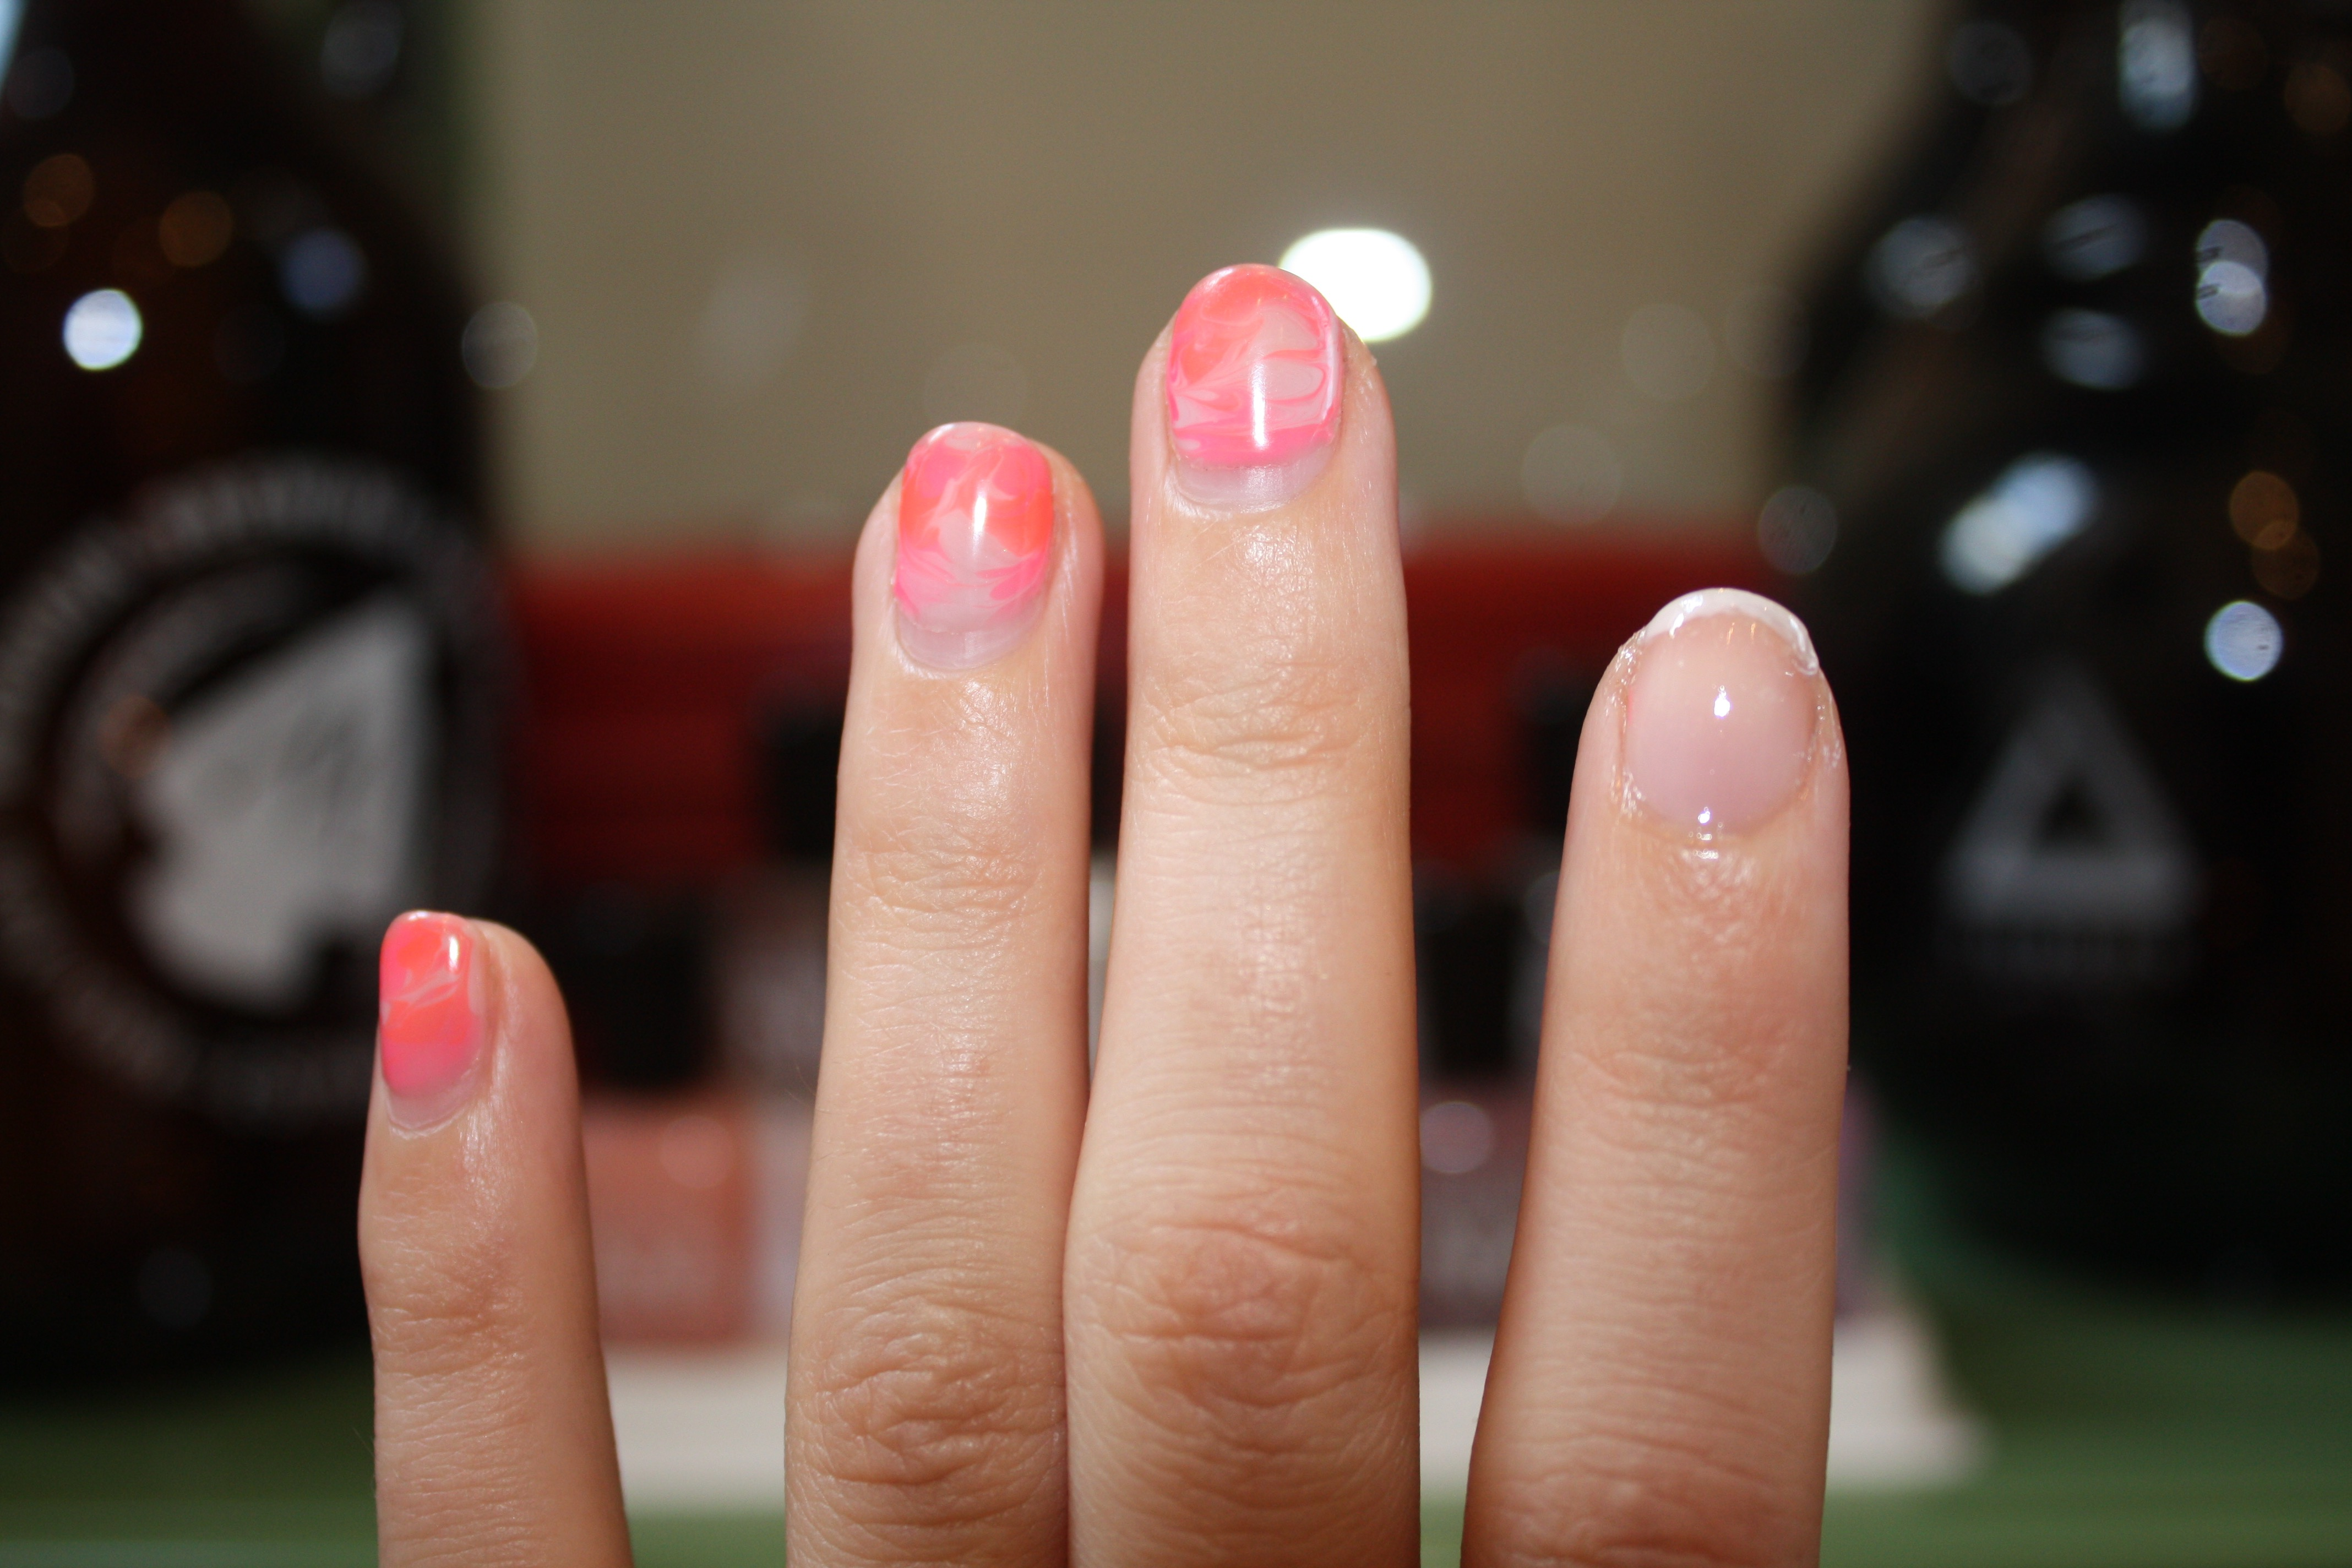 Repair your nails after gel nails